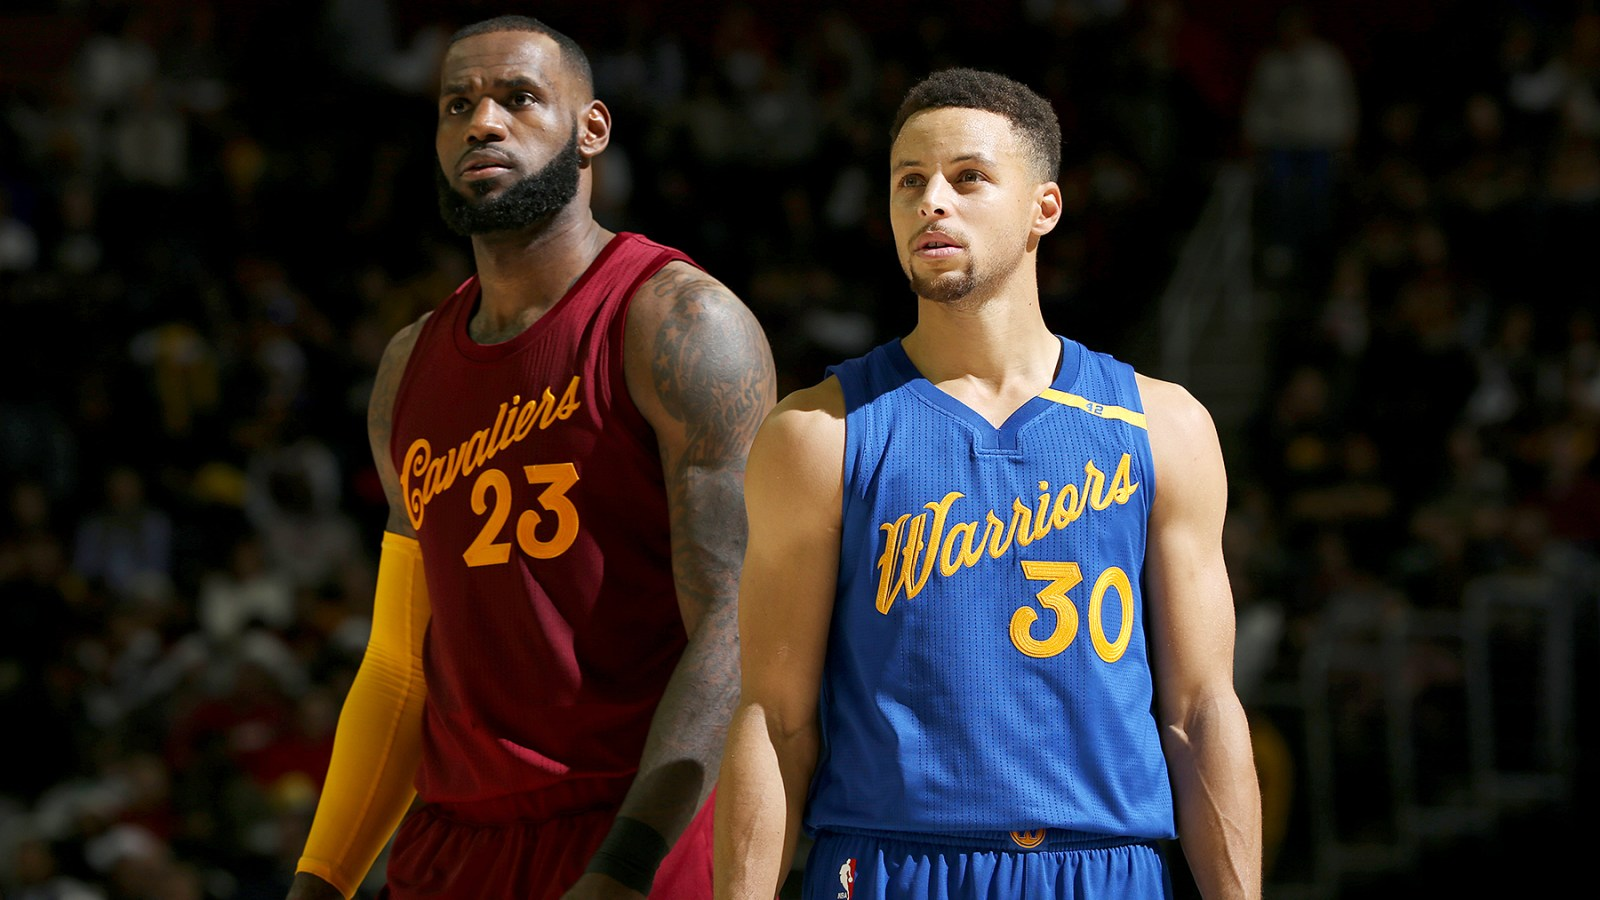 c8ca8e8be37 Stephen Curry vs. LeBron James: All About the NBA Rivals